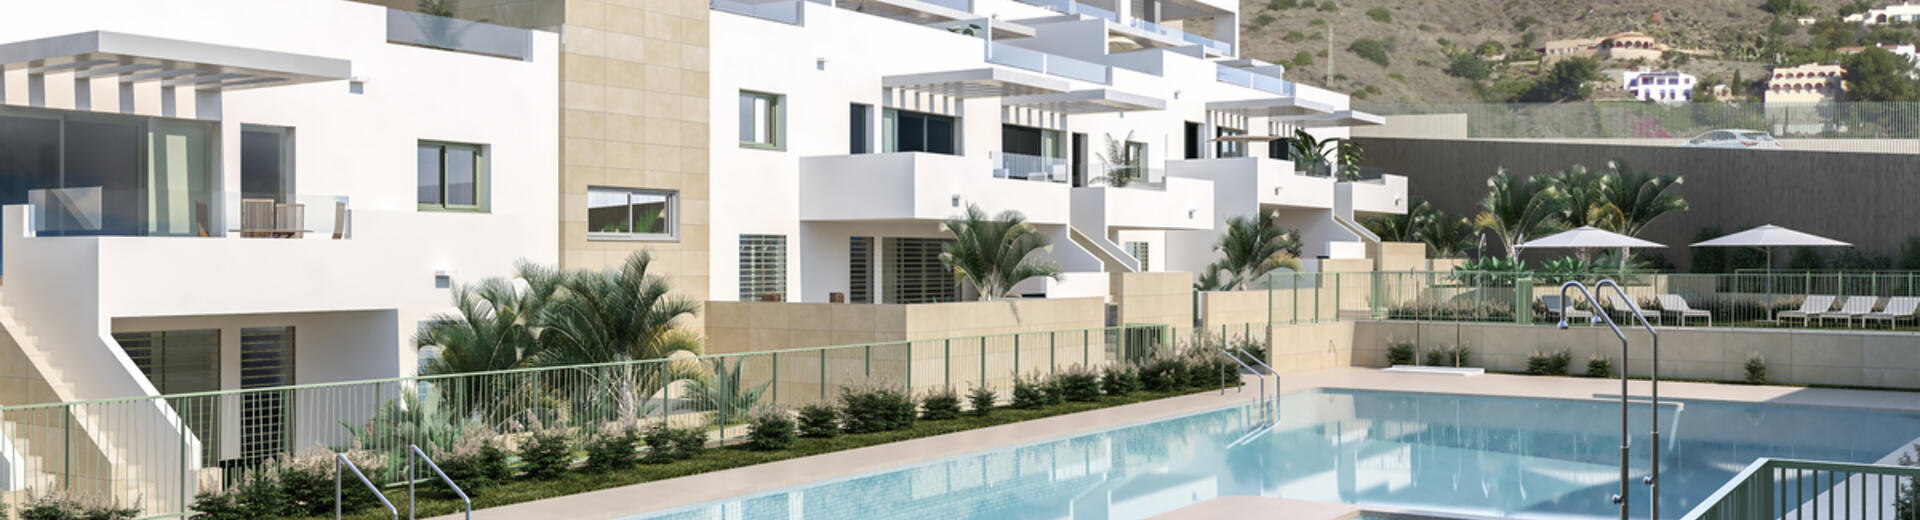 VIP7605: Apartment for Sale